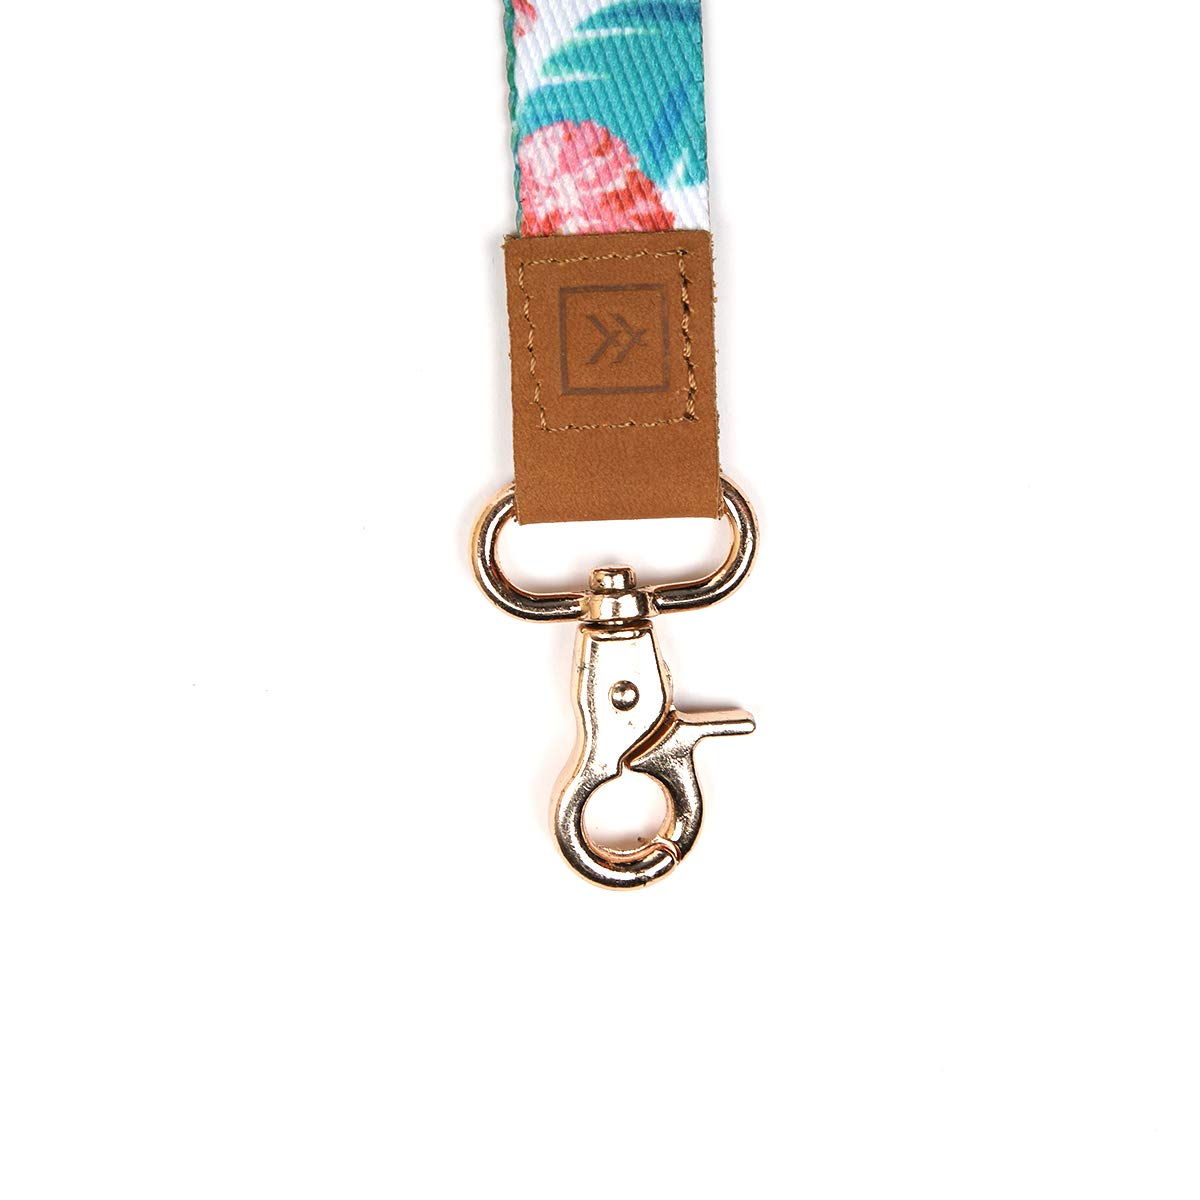 Thread Wallets - Cool Lanyards - Key Chain Holder by Thread Wallets (Image #1)